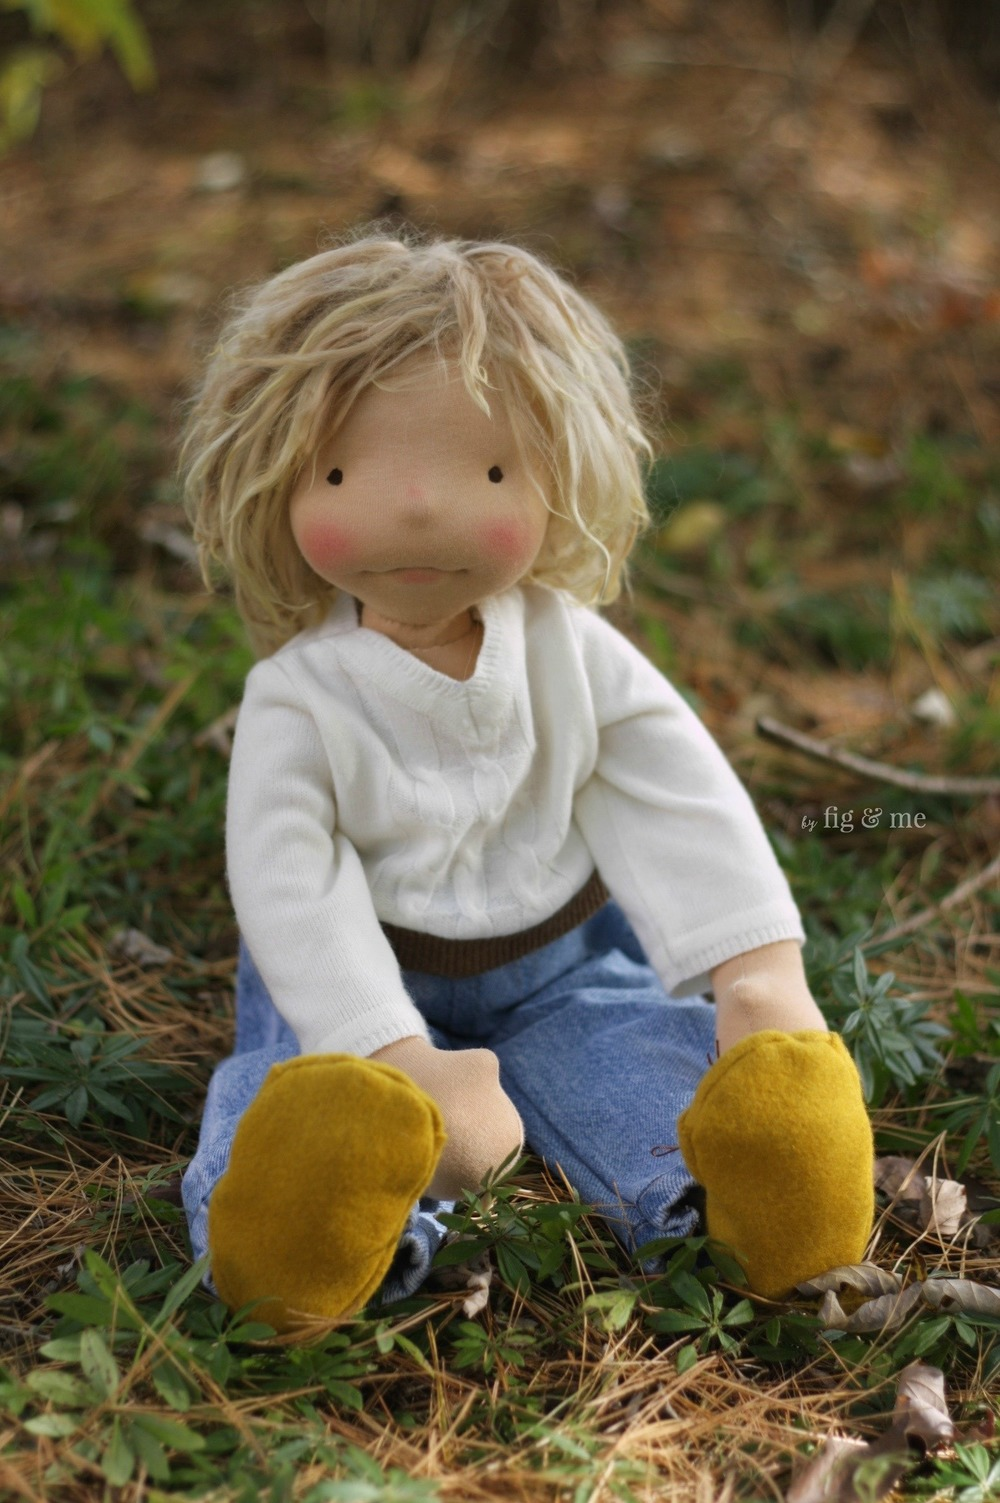 Little Kelly, a natural fiber art doll, made by Fig and me.